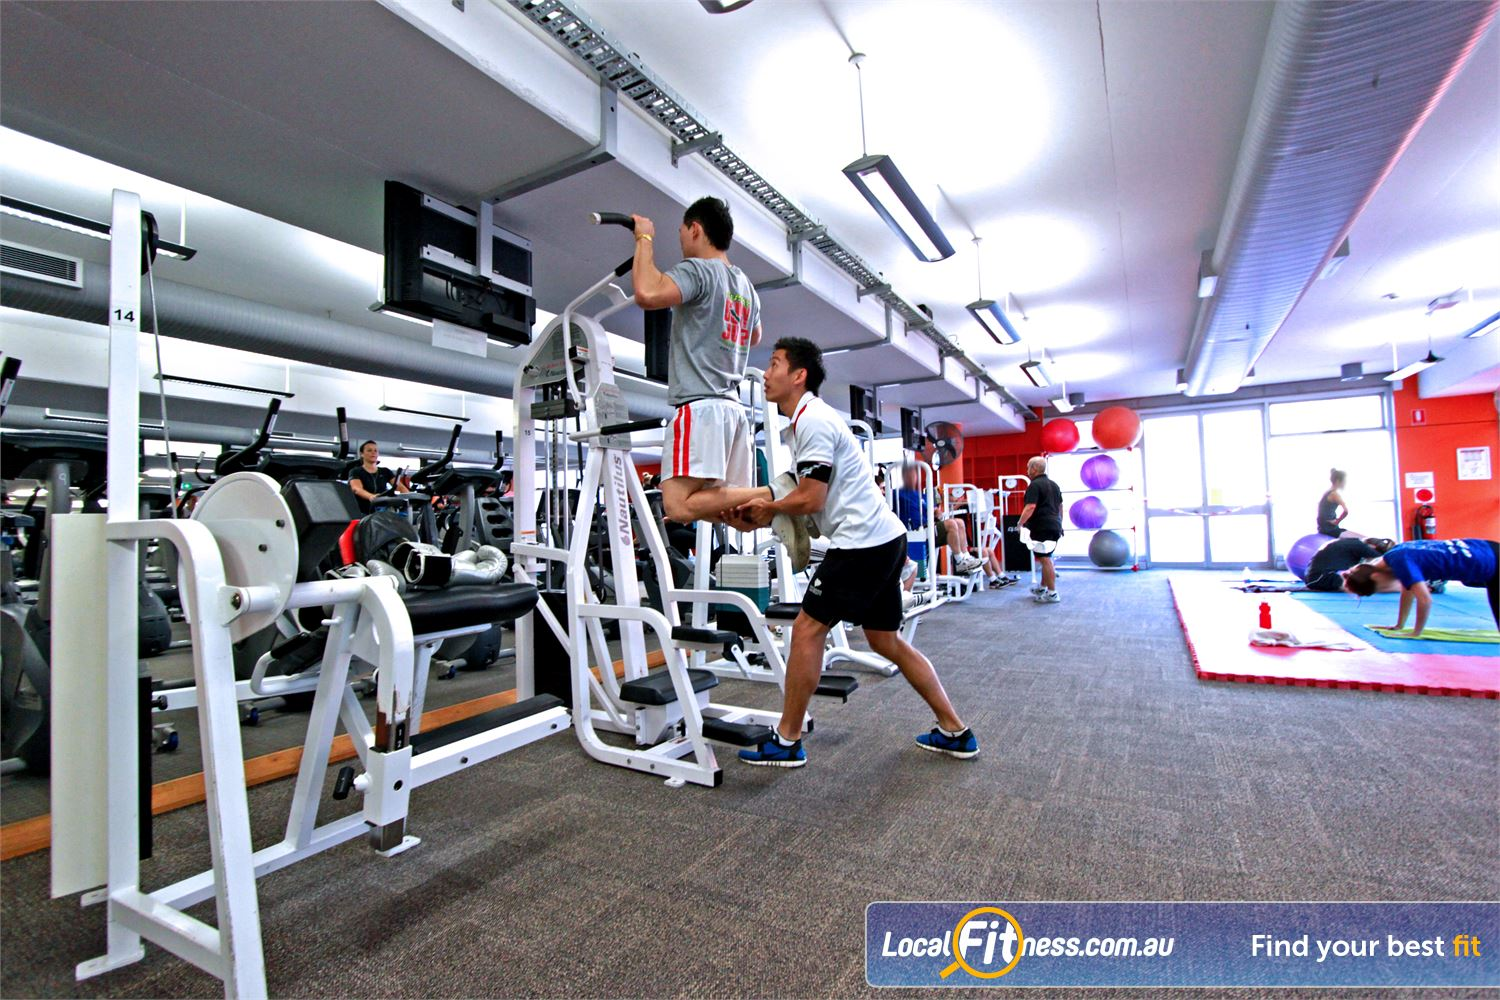 Macquarie University Sport & Aquatic Centre Near North Ryde Our Macquarie University gym is fully equipped with a wide selection of easy to use pin-loading machines.